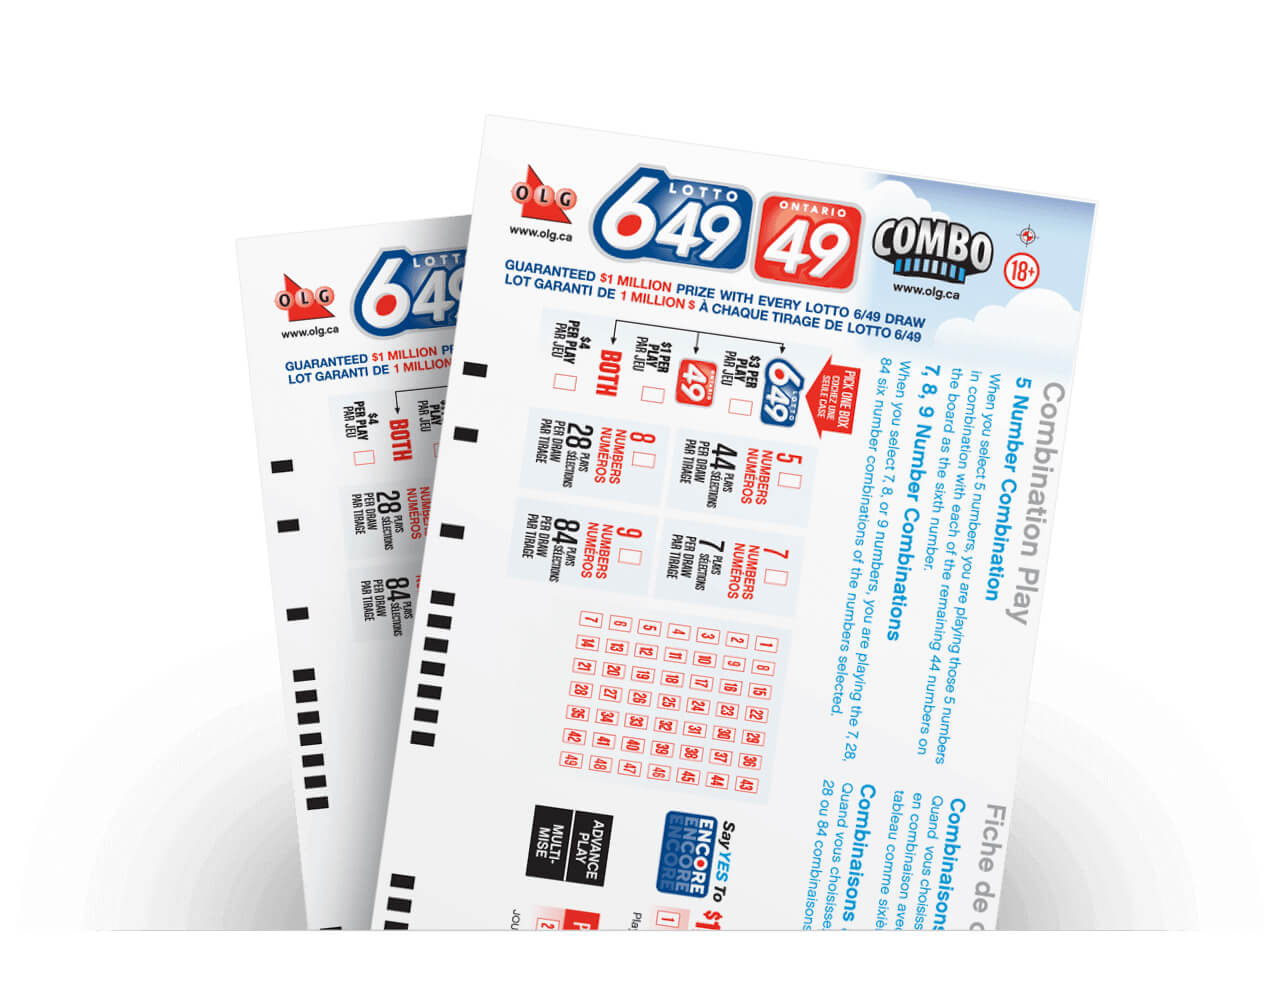 olg lotto 649 and ontario 49 combo lottery ticket